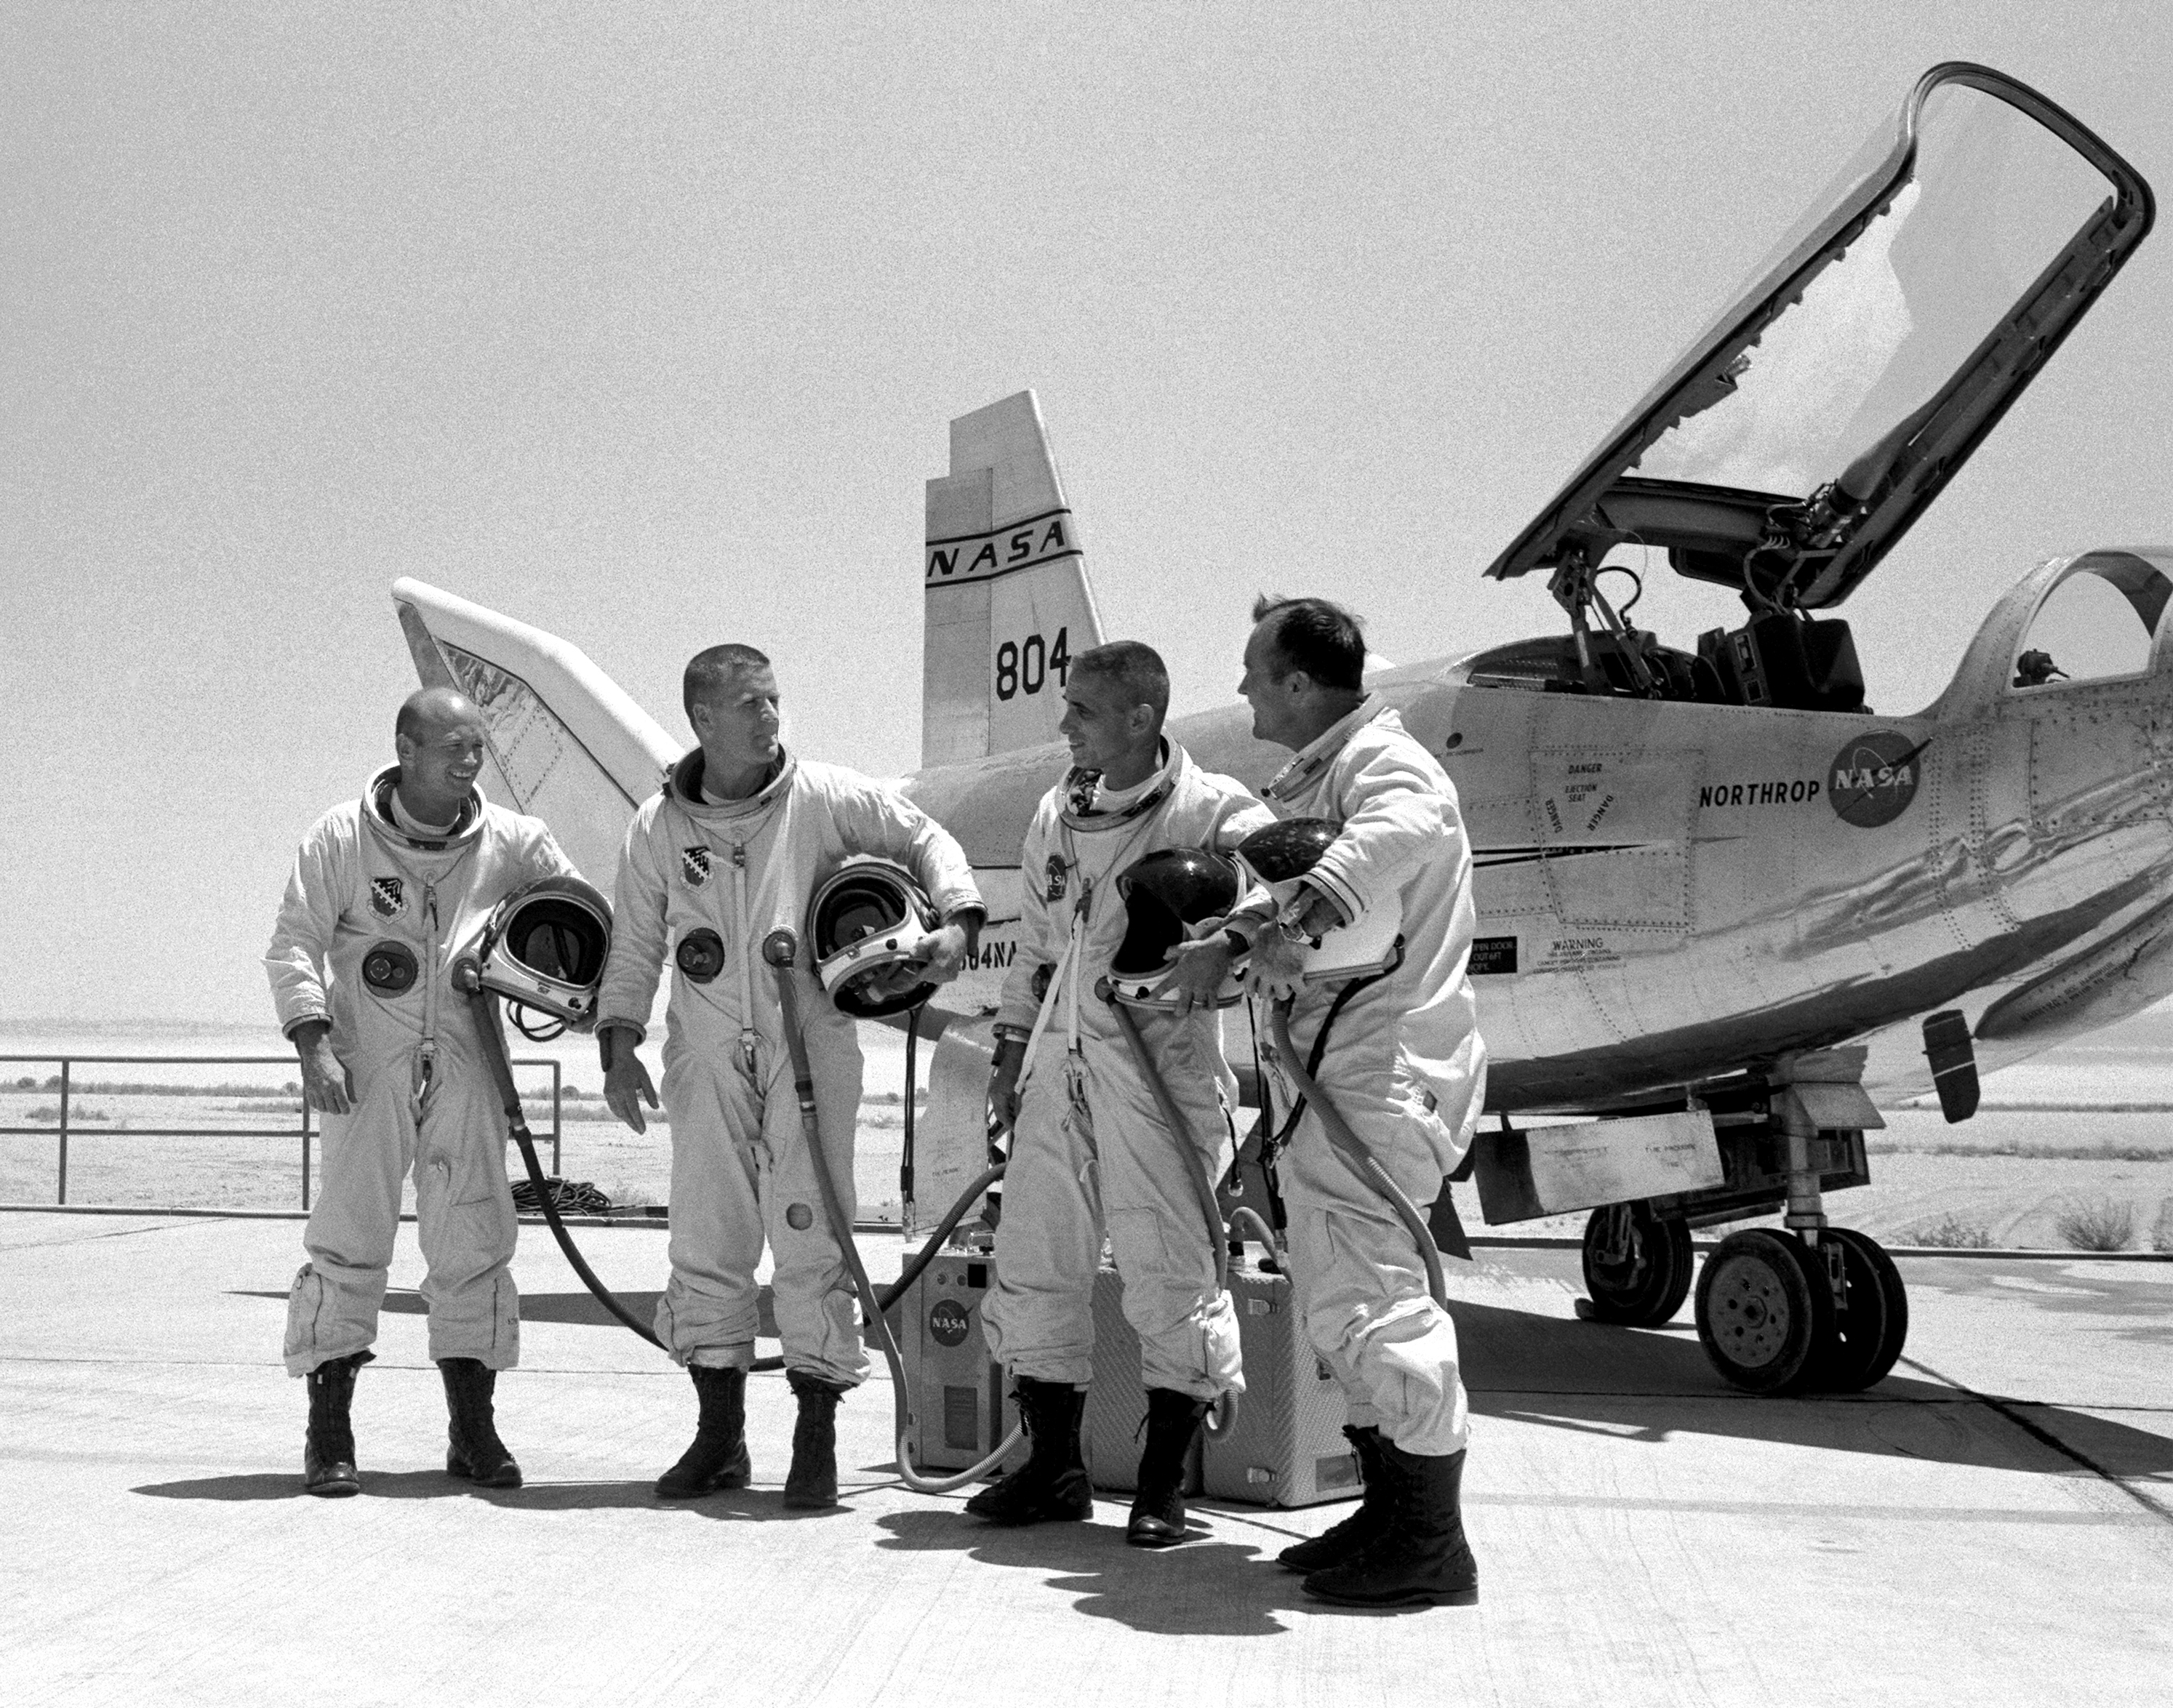 HL-10_On_Rogers_Dry_Lake_Bed_With_Pilots_-_GPN-2000-000101